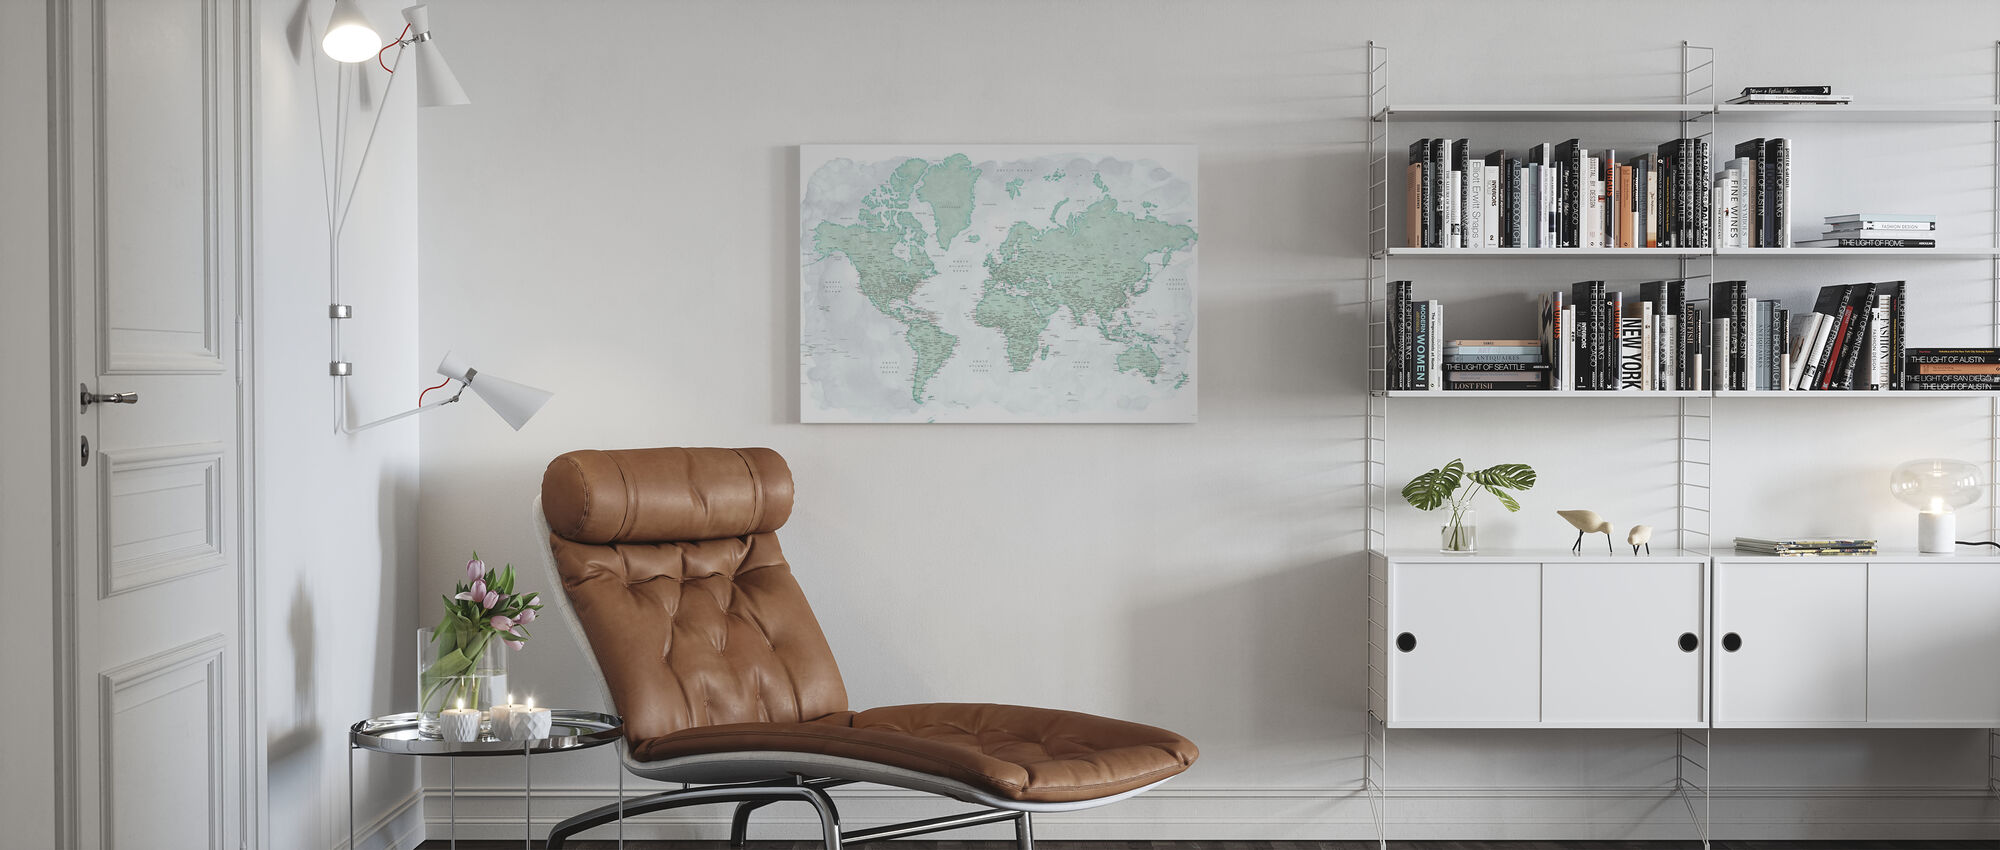 World Map with Cities - Canvas print - Living Room